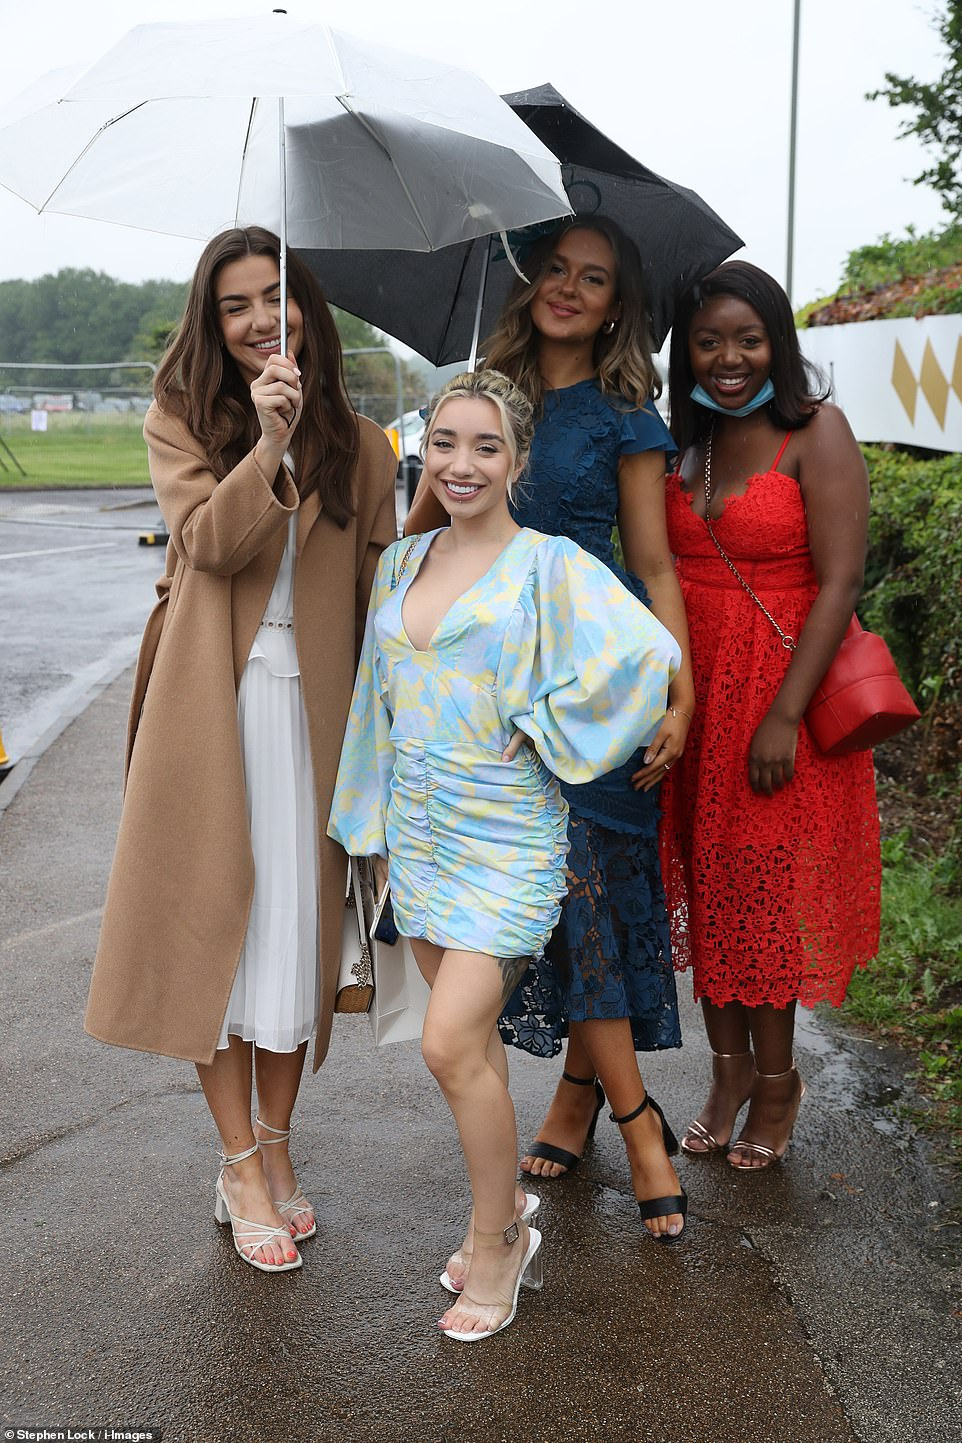 Strike a pose! Epsom racegoers didn't let the rainy weather conditions stop them from putting on a glamorous display as they arrived at Epsom Downs Racecourse in Surrey for Derby day. Pictured, front centre,British former professional boxer Nicola Adams' girlfriend Ella Baig